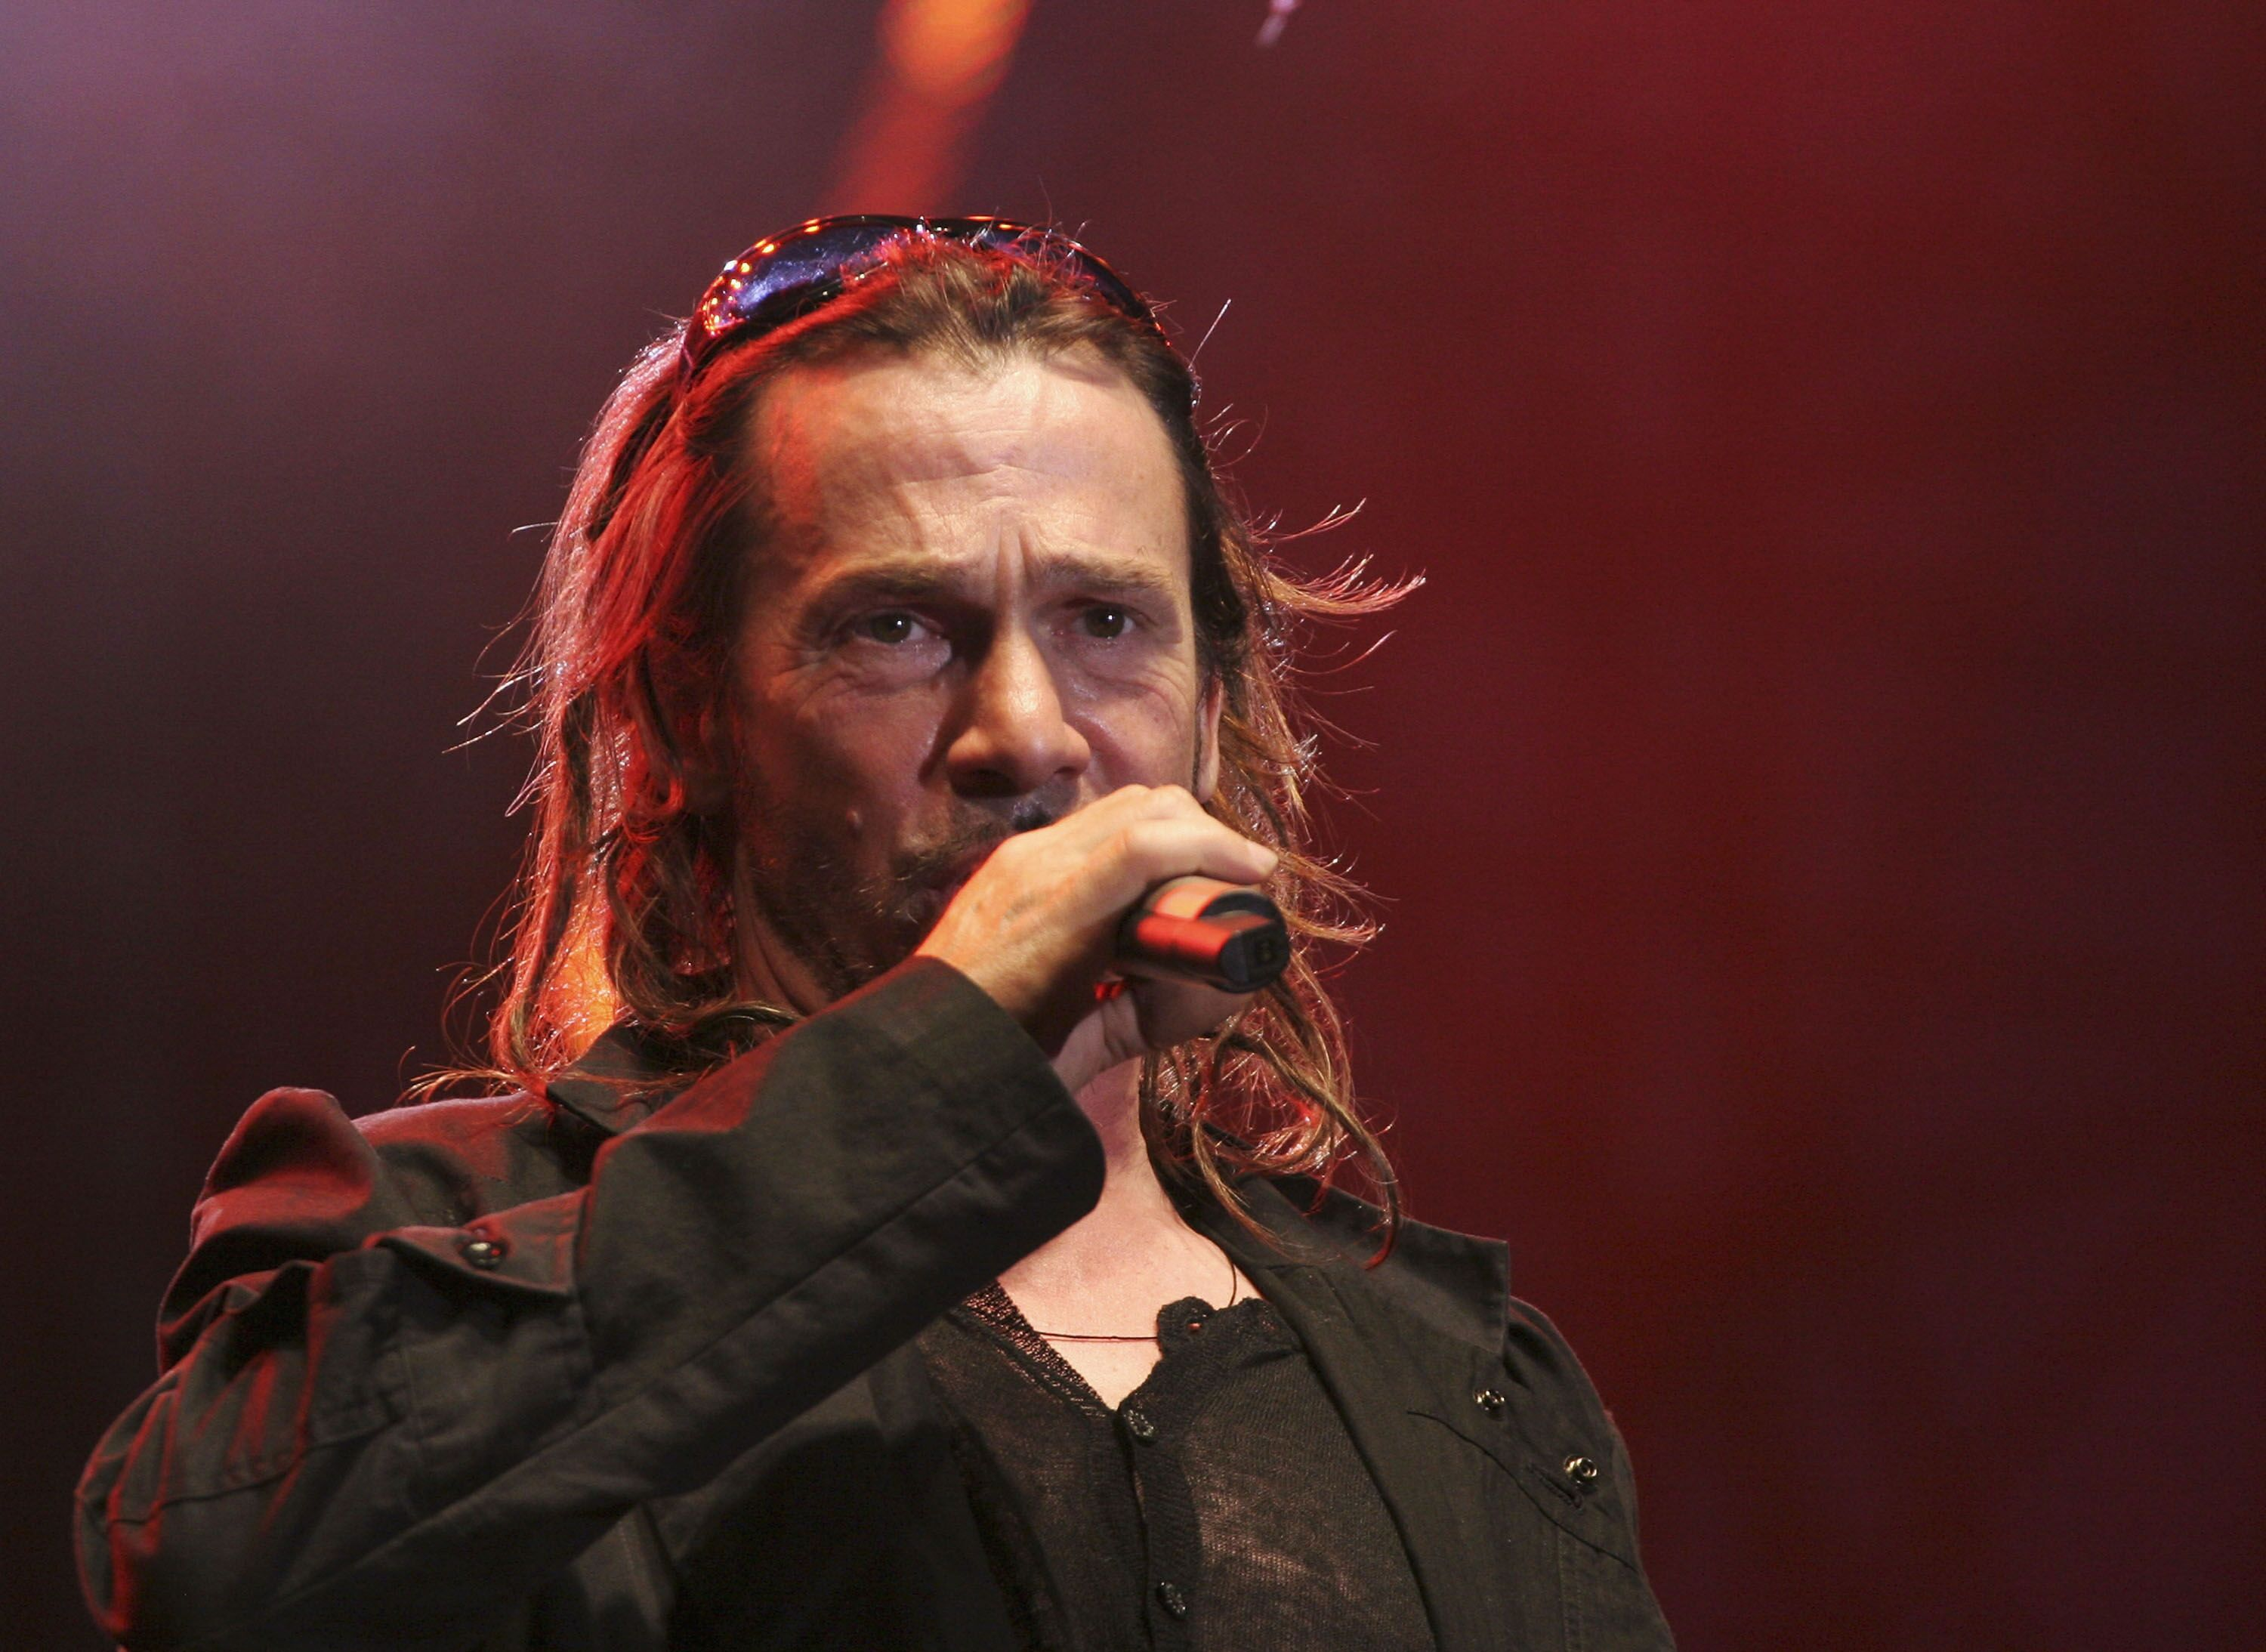 Le chanteur Florent Pagny sur scène. l Source : Getty Images